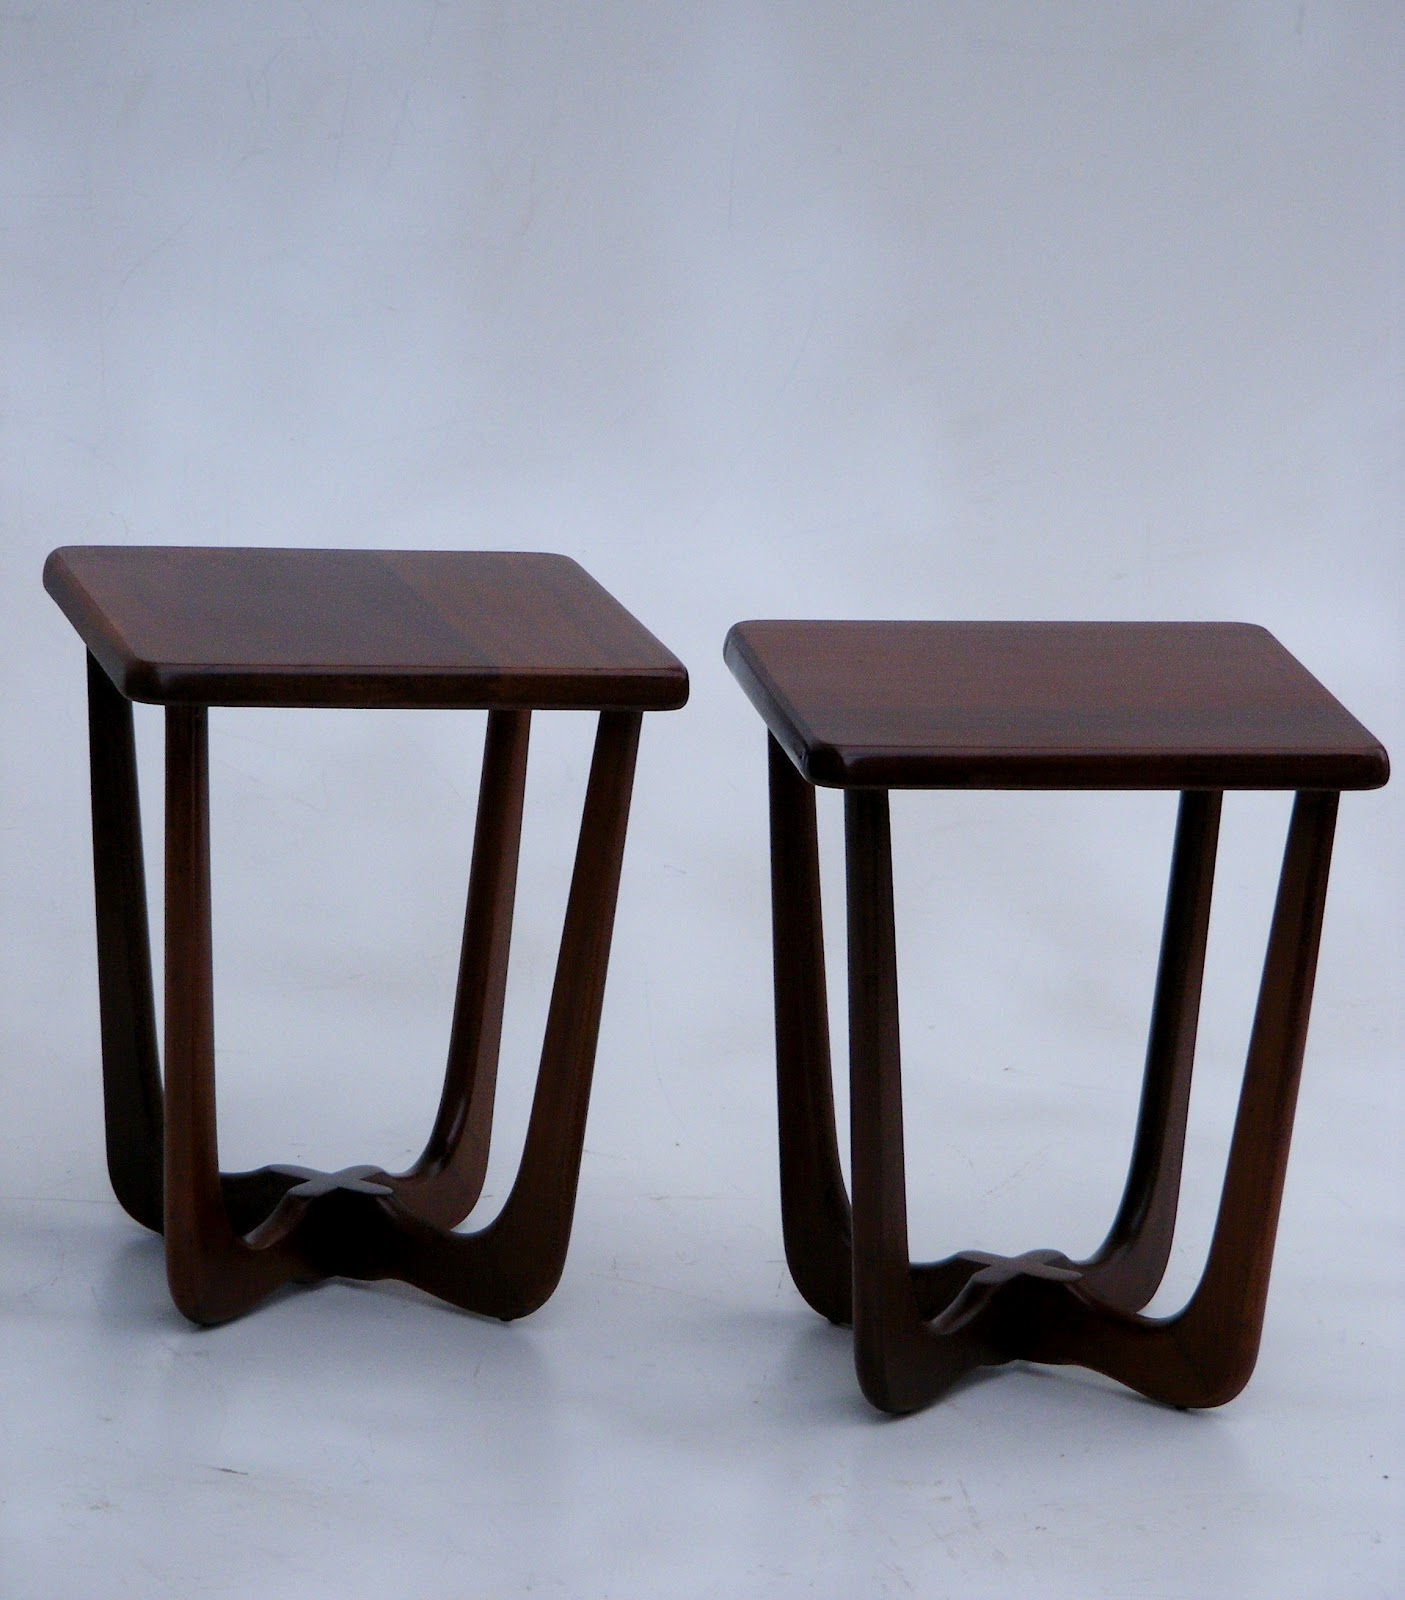 Solid Mahogany coffee table and two side table set. Coffee table 150cm x 59cm Height u2013 43cm. Sidetables 33cm x 33cm Height u2013 41cm & VAMP FURNITURE: New furniture stock this week at Vamp - 13 July 2012